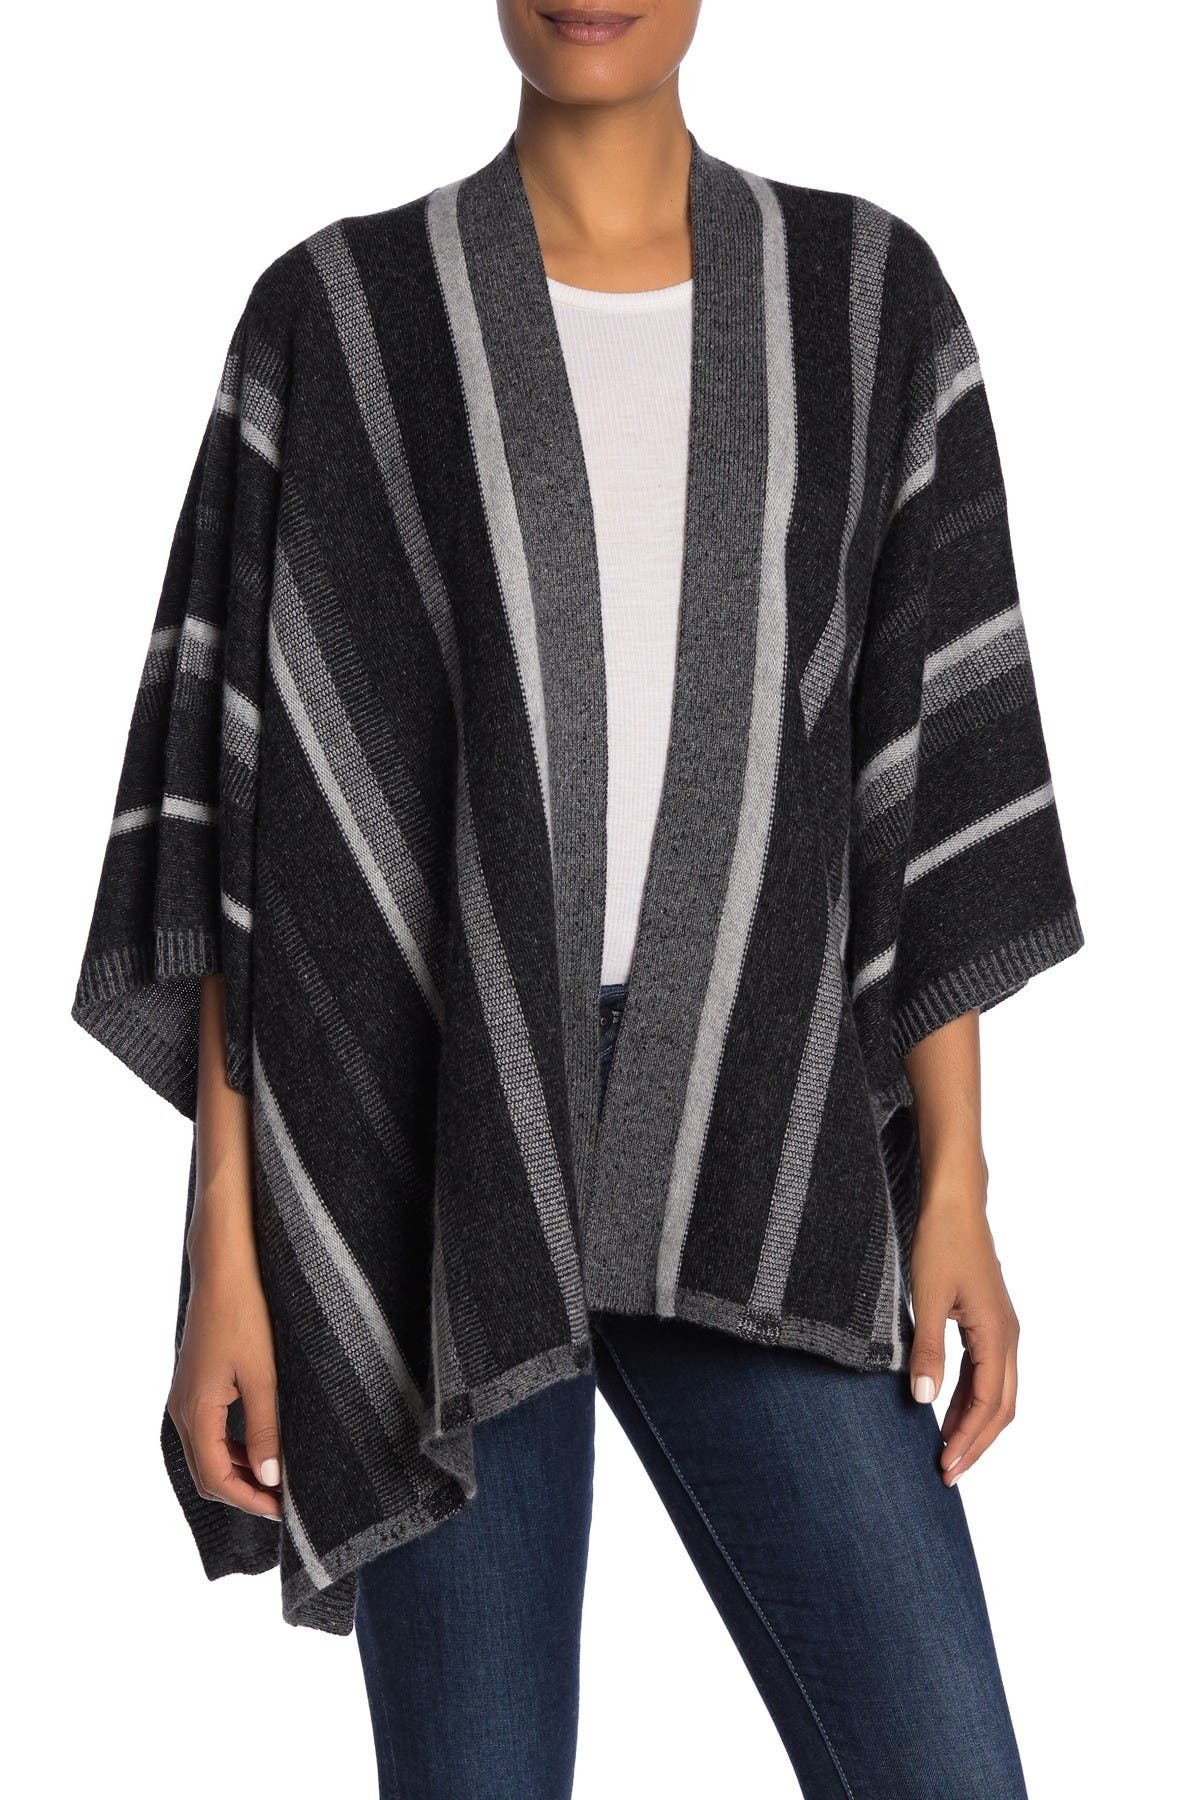 Image of SKULL CASHMERE Hunter Wool & Cashmere Blend Poncho